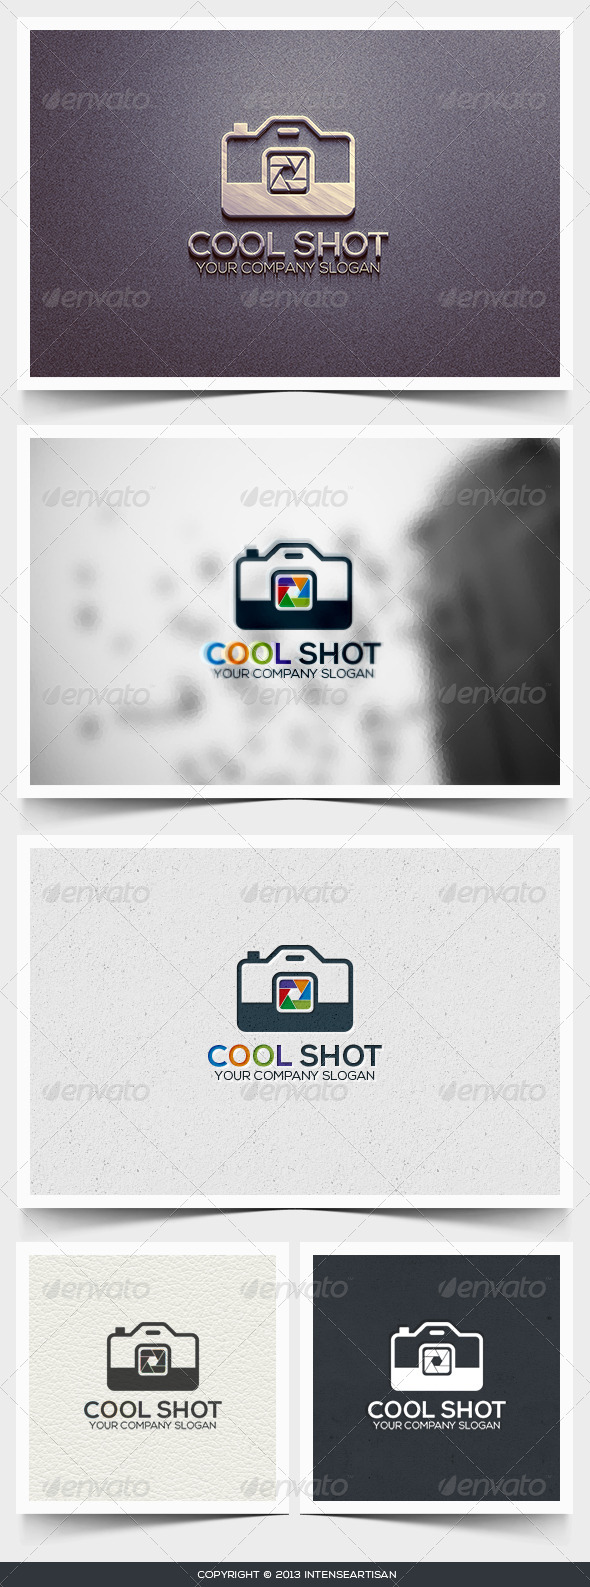 Cool Shot Logo Template - Objects Logo Templates